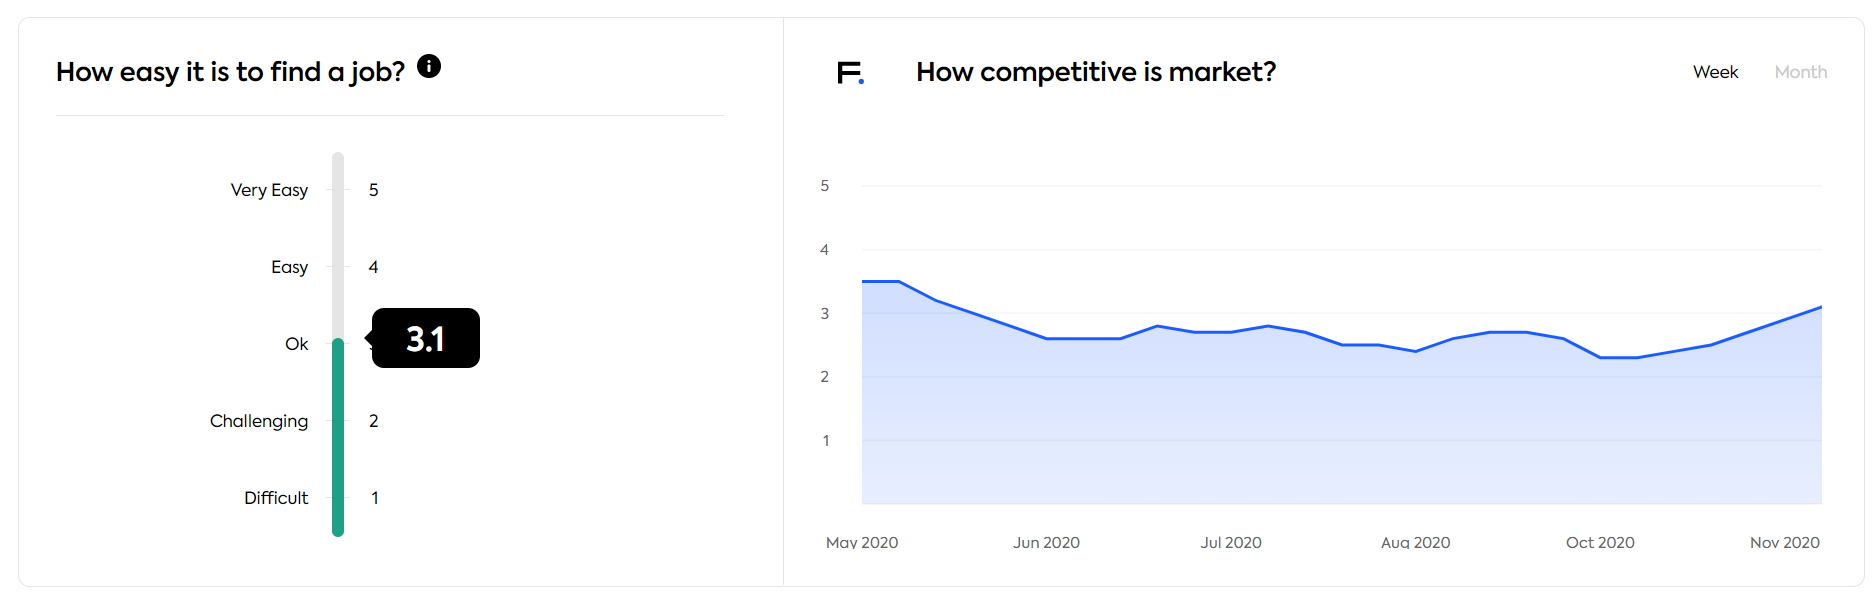 Market competitiveness in Finland